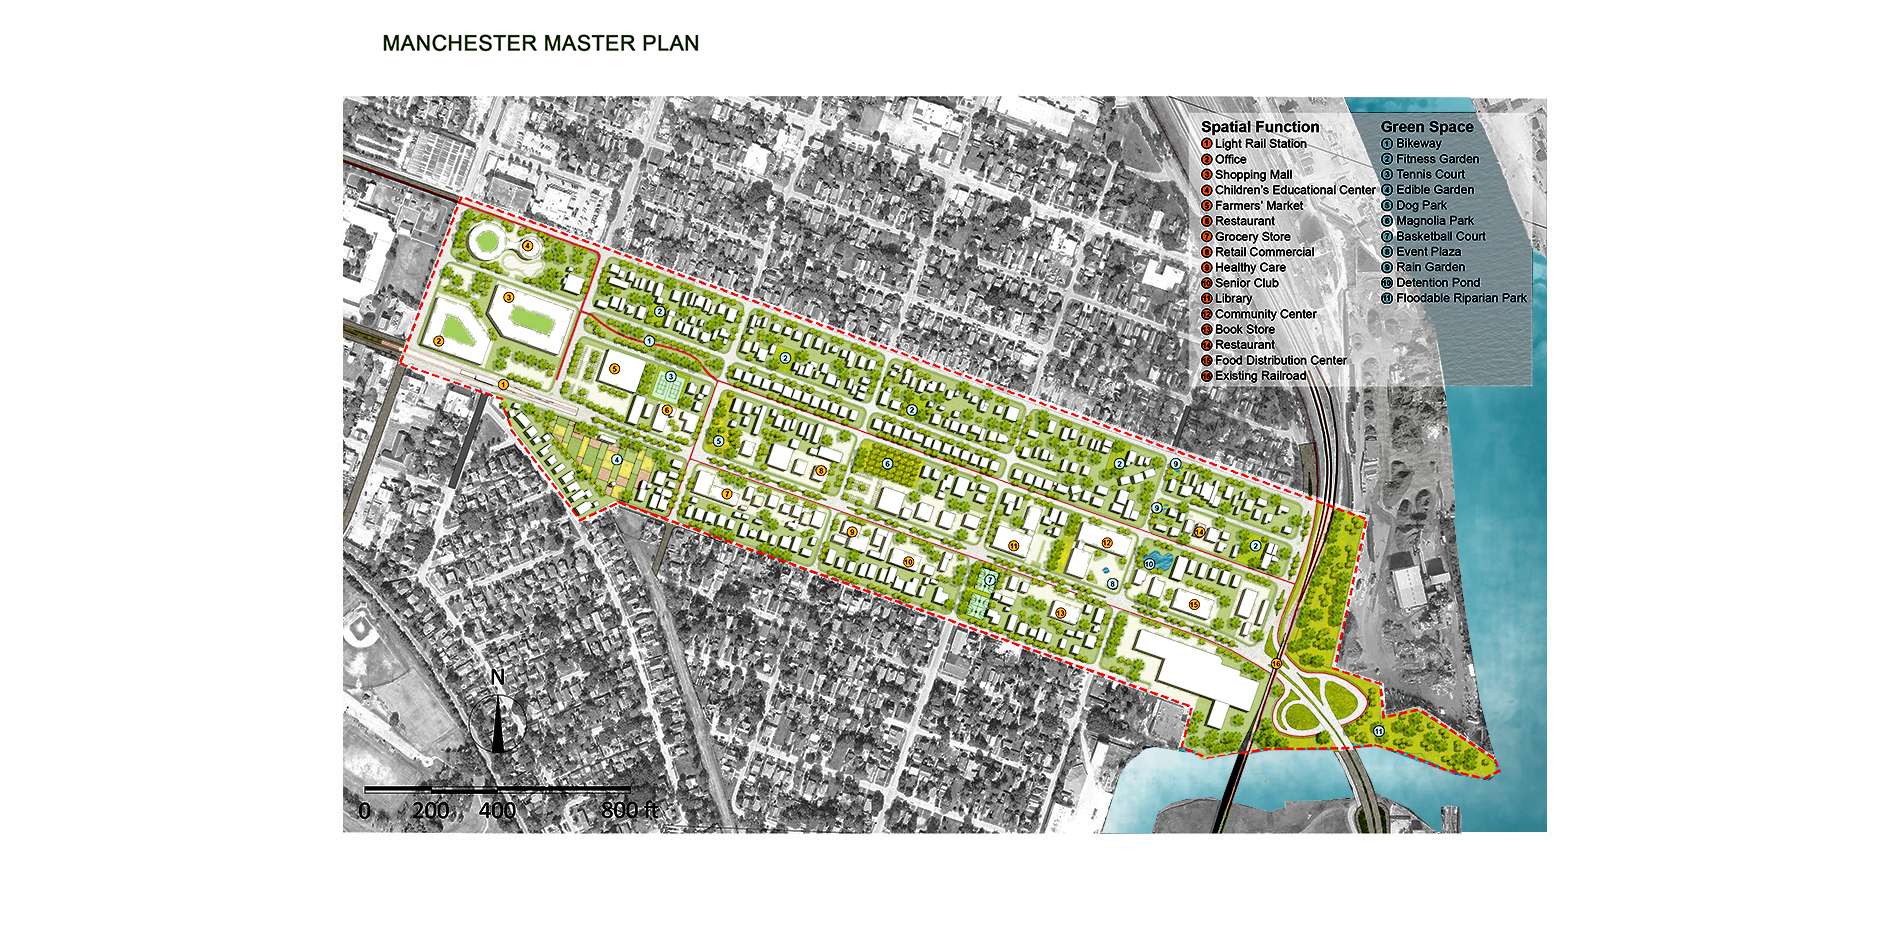 Master plan of Manchester